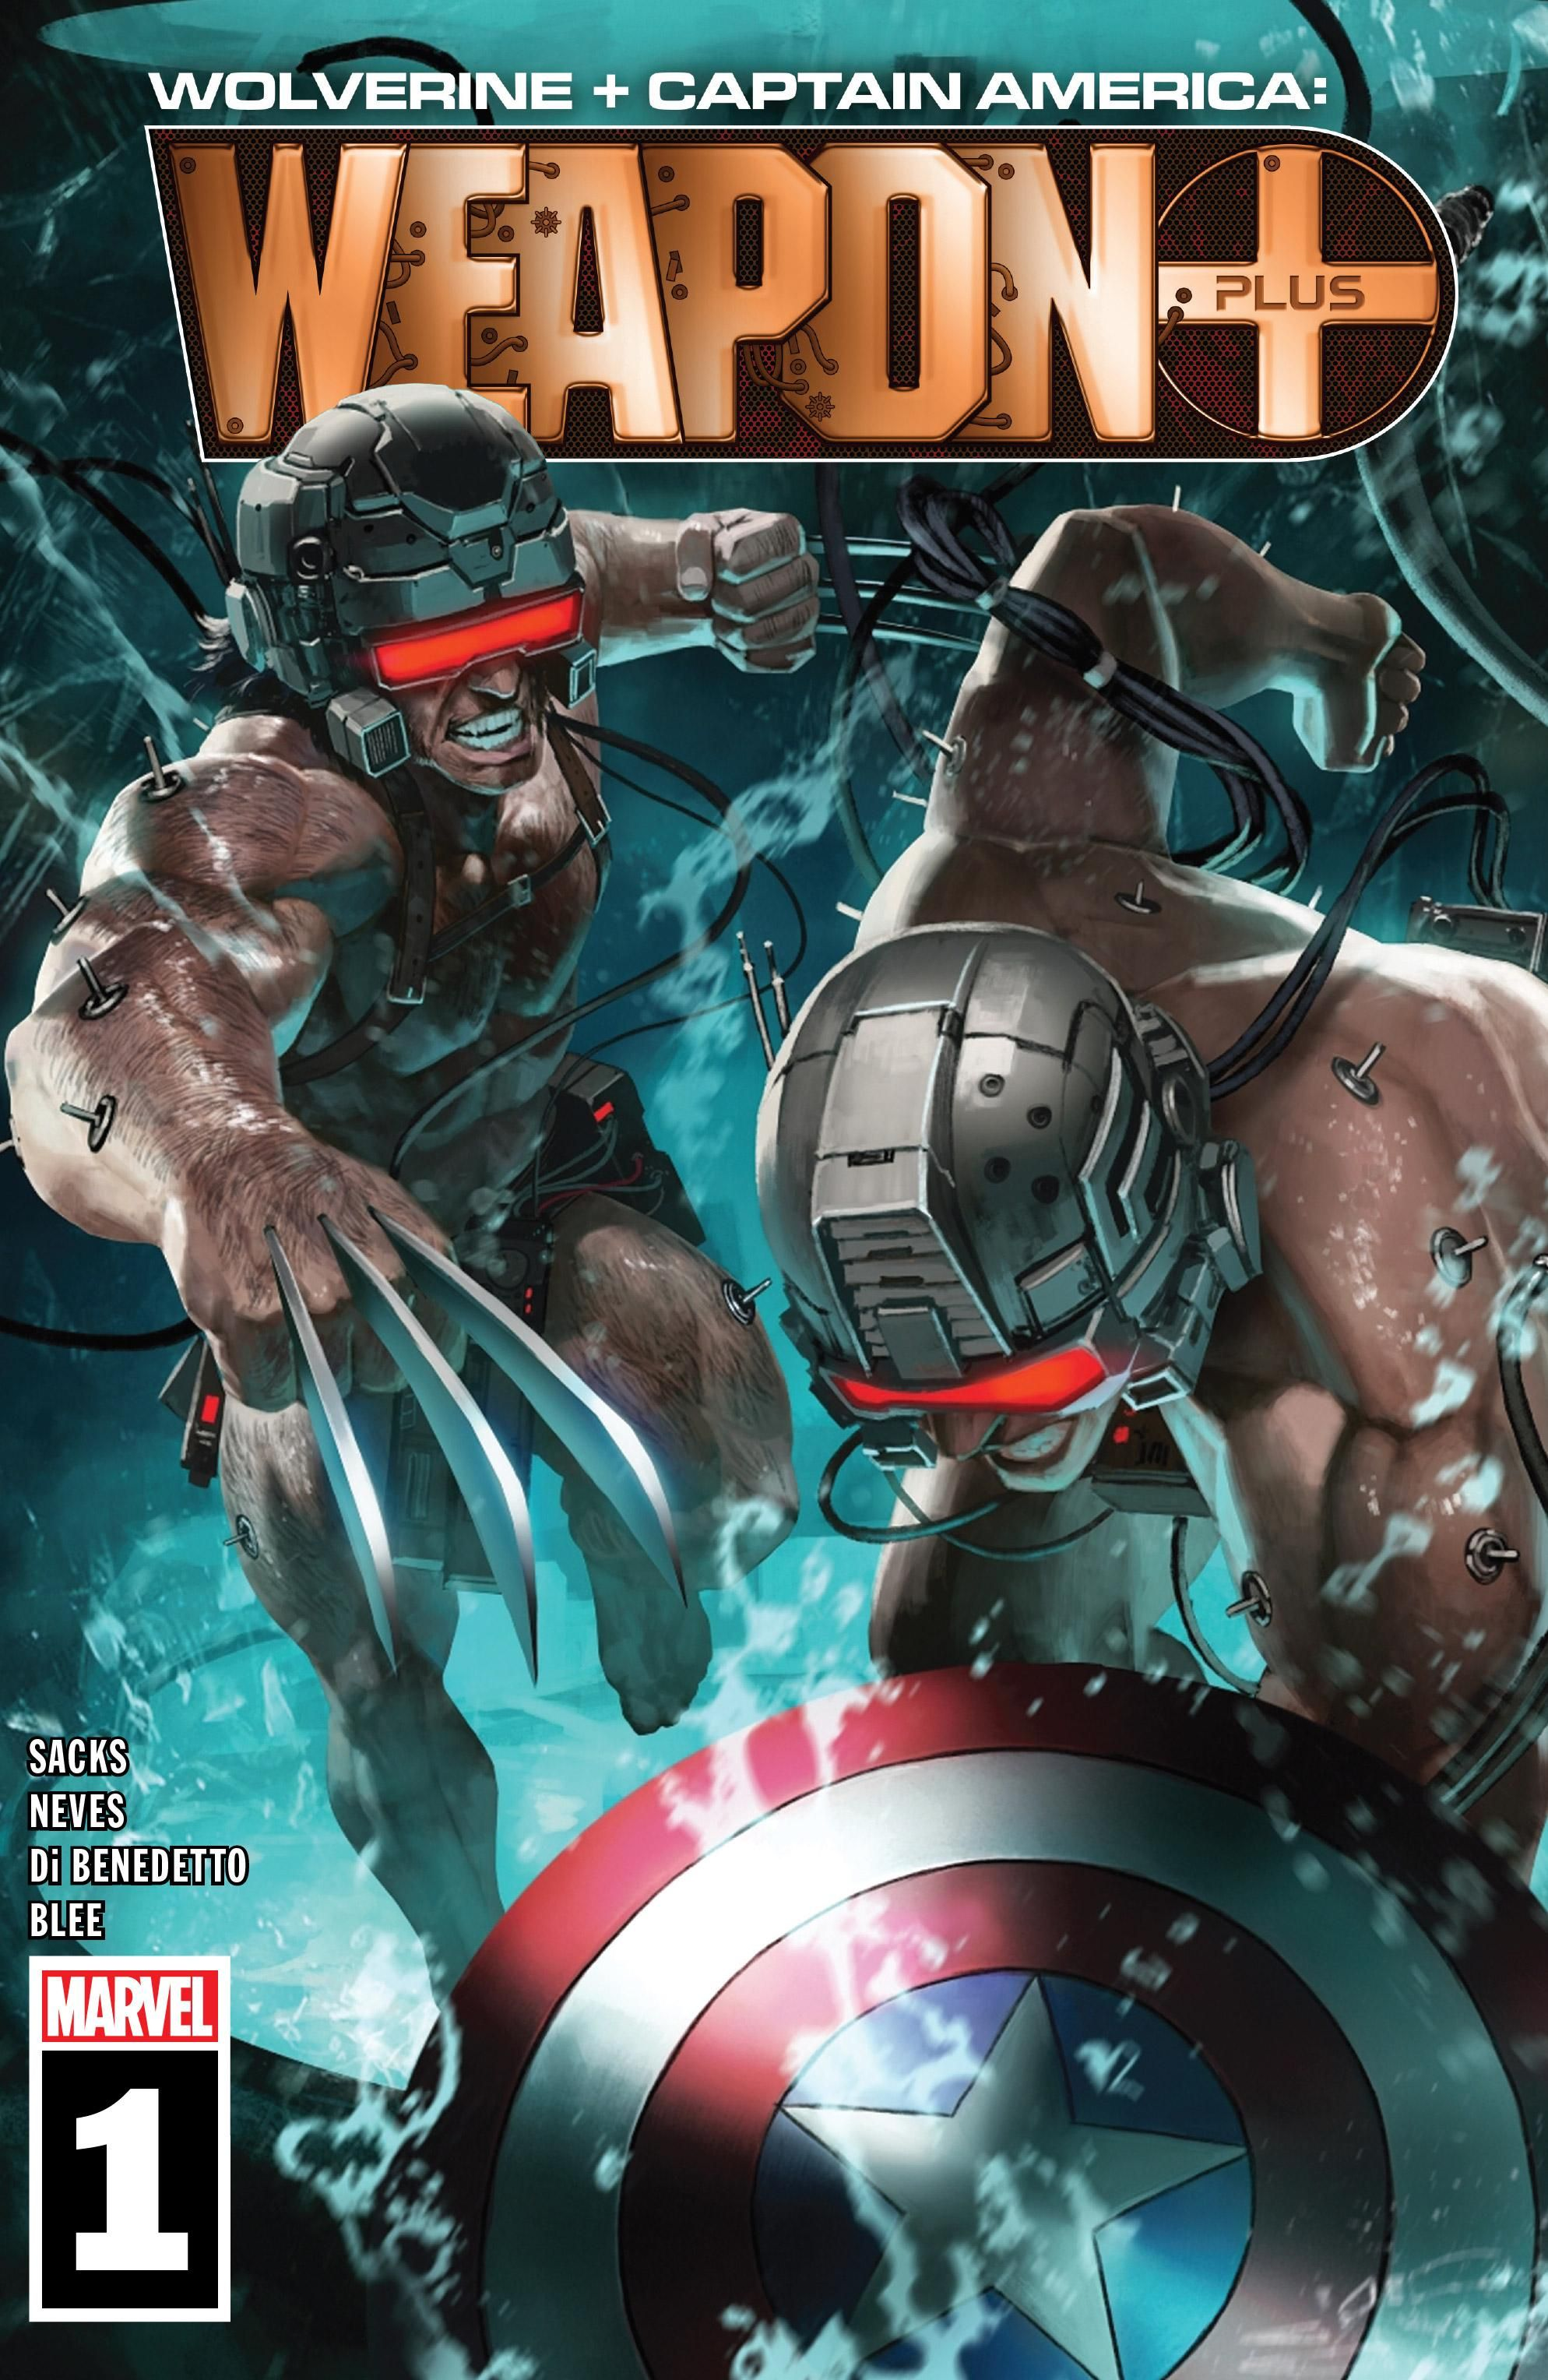 Wolverine & Captain America: Weapon Plus Vol 1 1